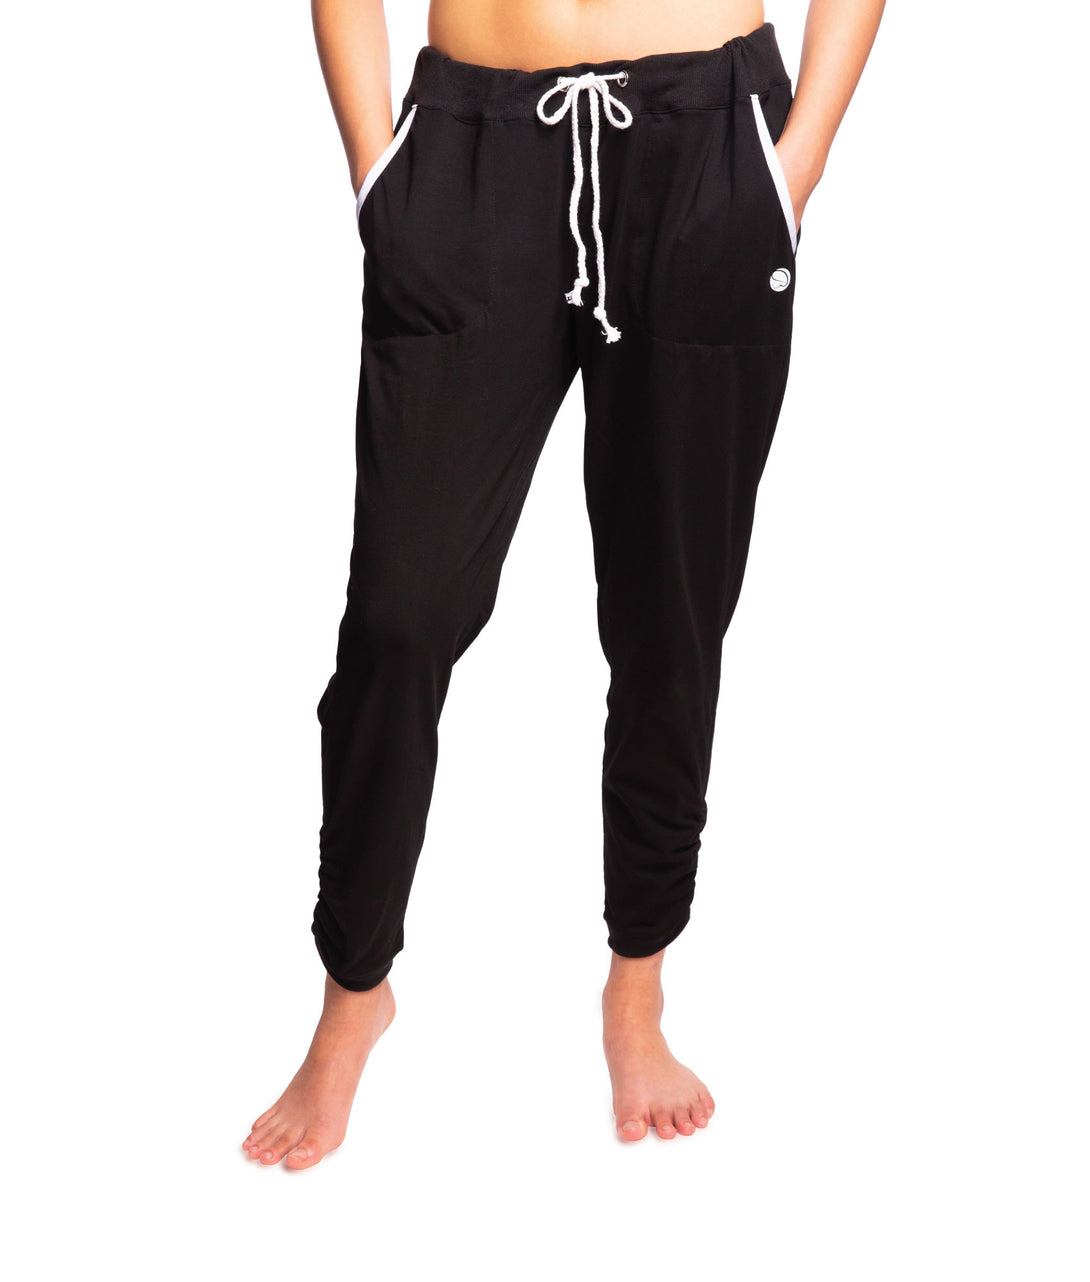 Recovery Comfort Jogger Pants